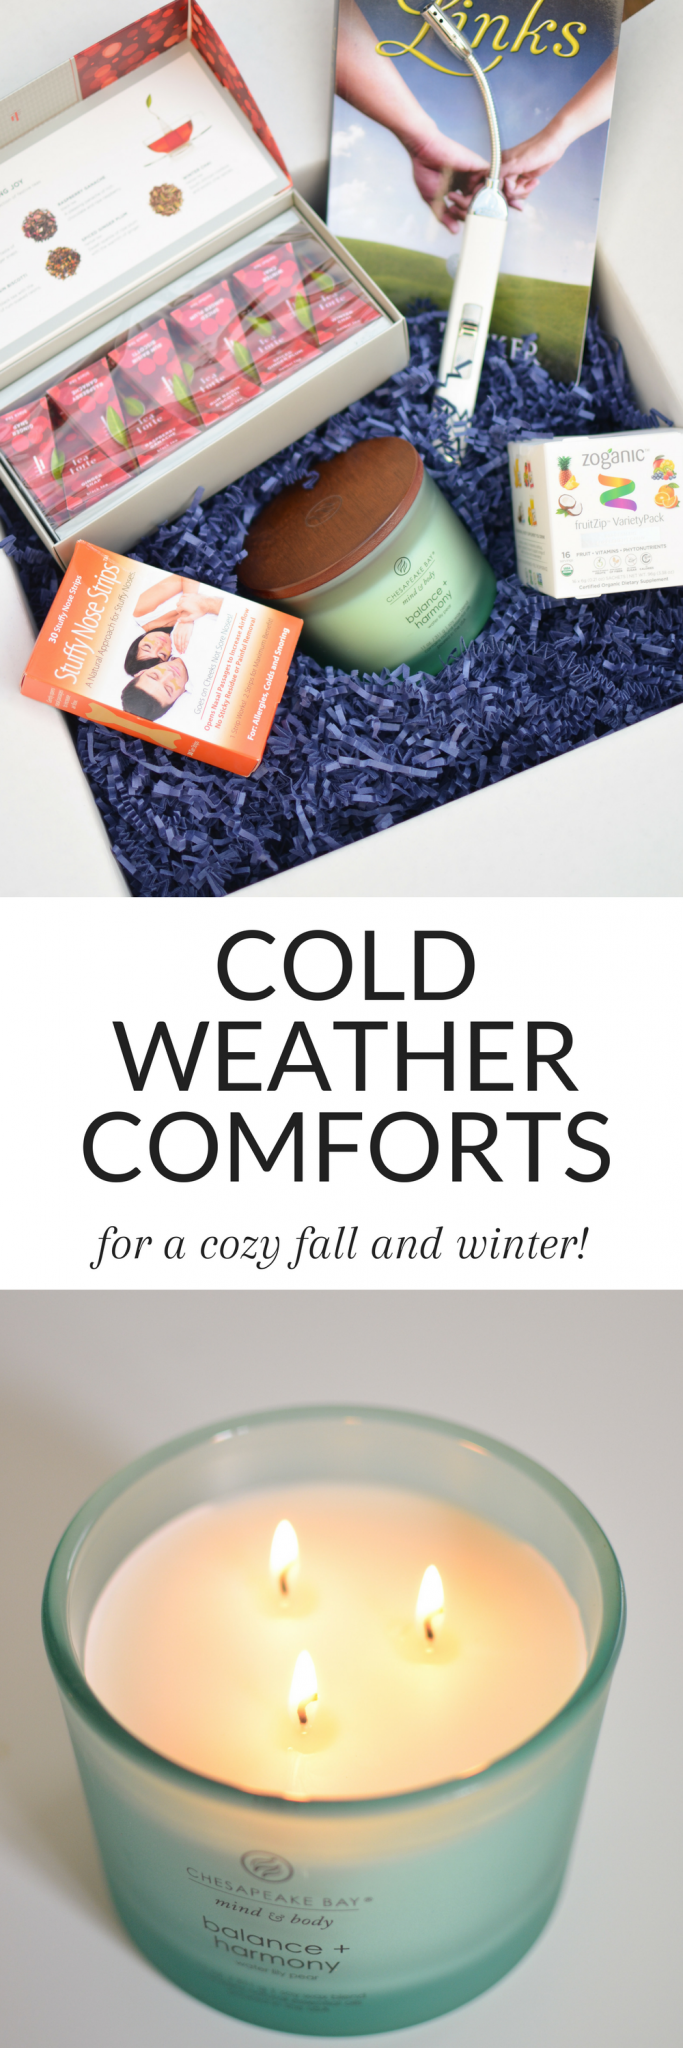 #AD #ColdComfortsBBxx Are you looking forward to the cold weather that's already on its way? It's already getting cold here in Virginia, and I got a chance to try out some of the best products for the season - you need these in your life for a cozy fall and winter!